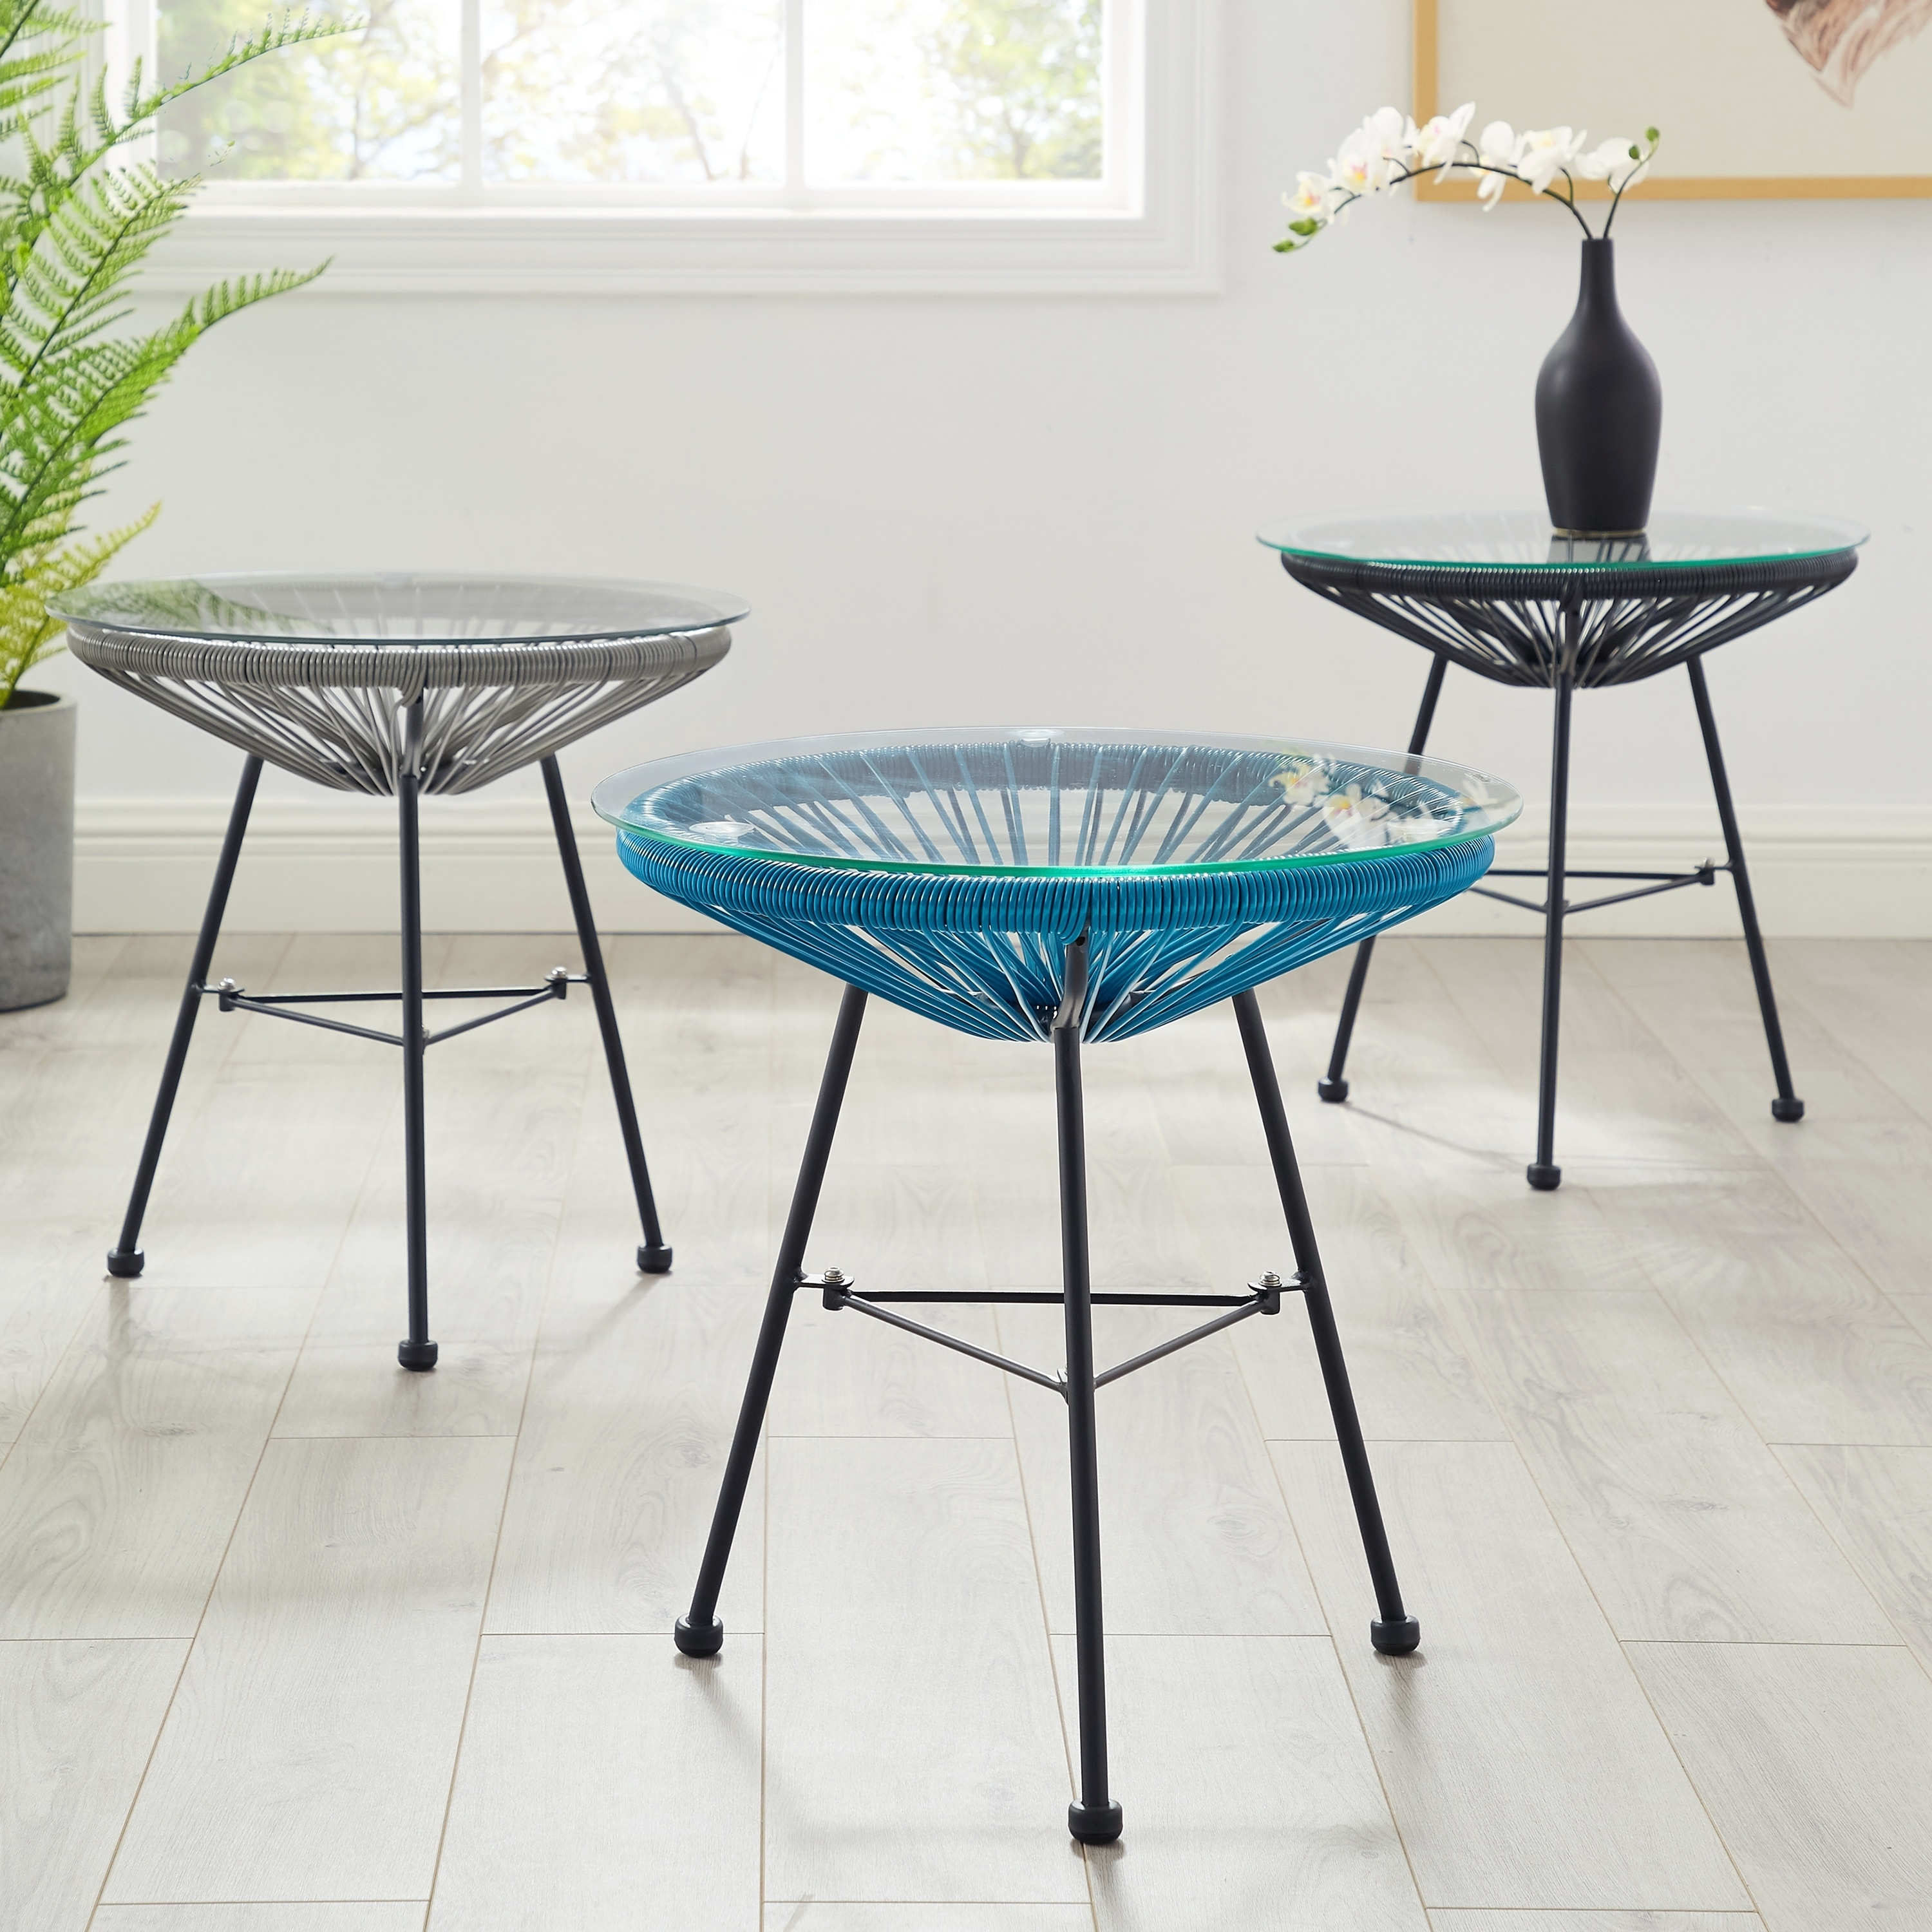 sarcelles modern woven wicker patio side table with glass top corvus blue outdoor accent free shipping today tray wood stump stackable snack tables unfinished dining hairpin